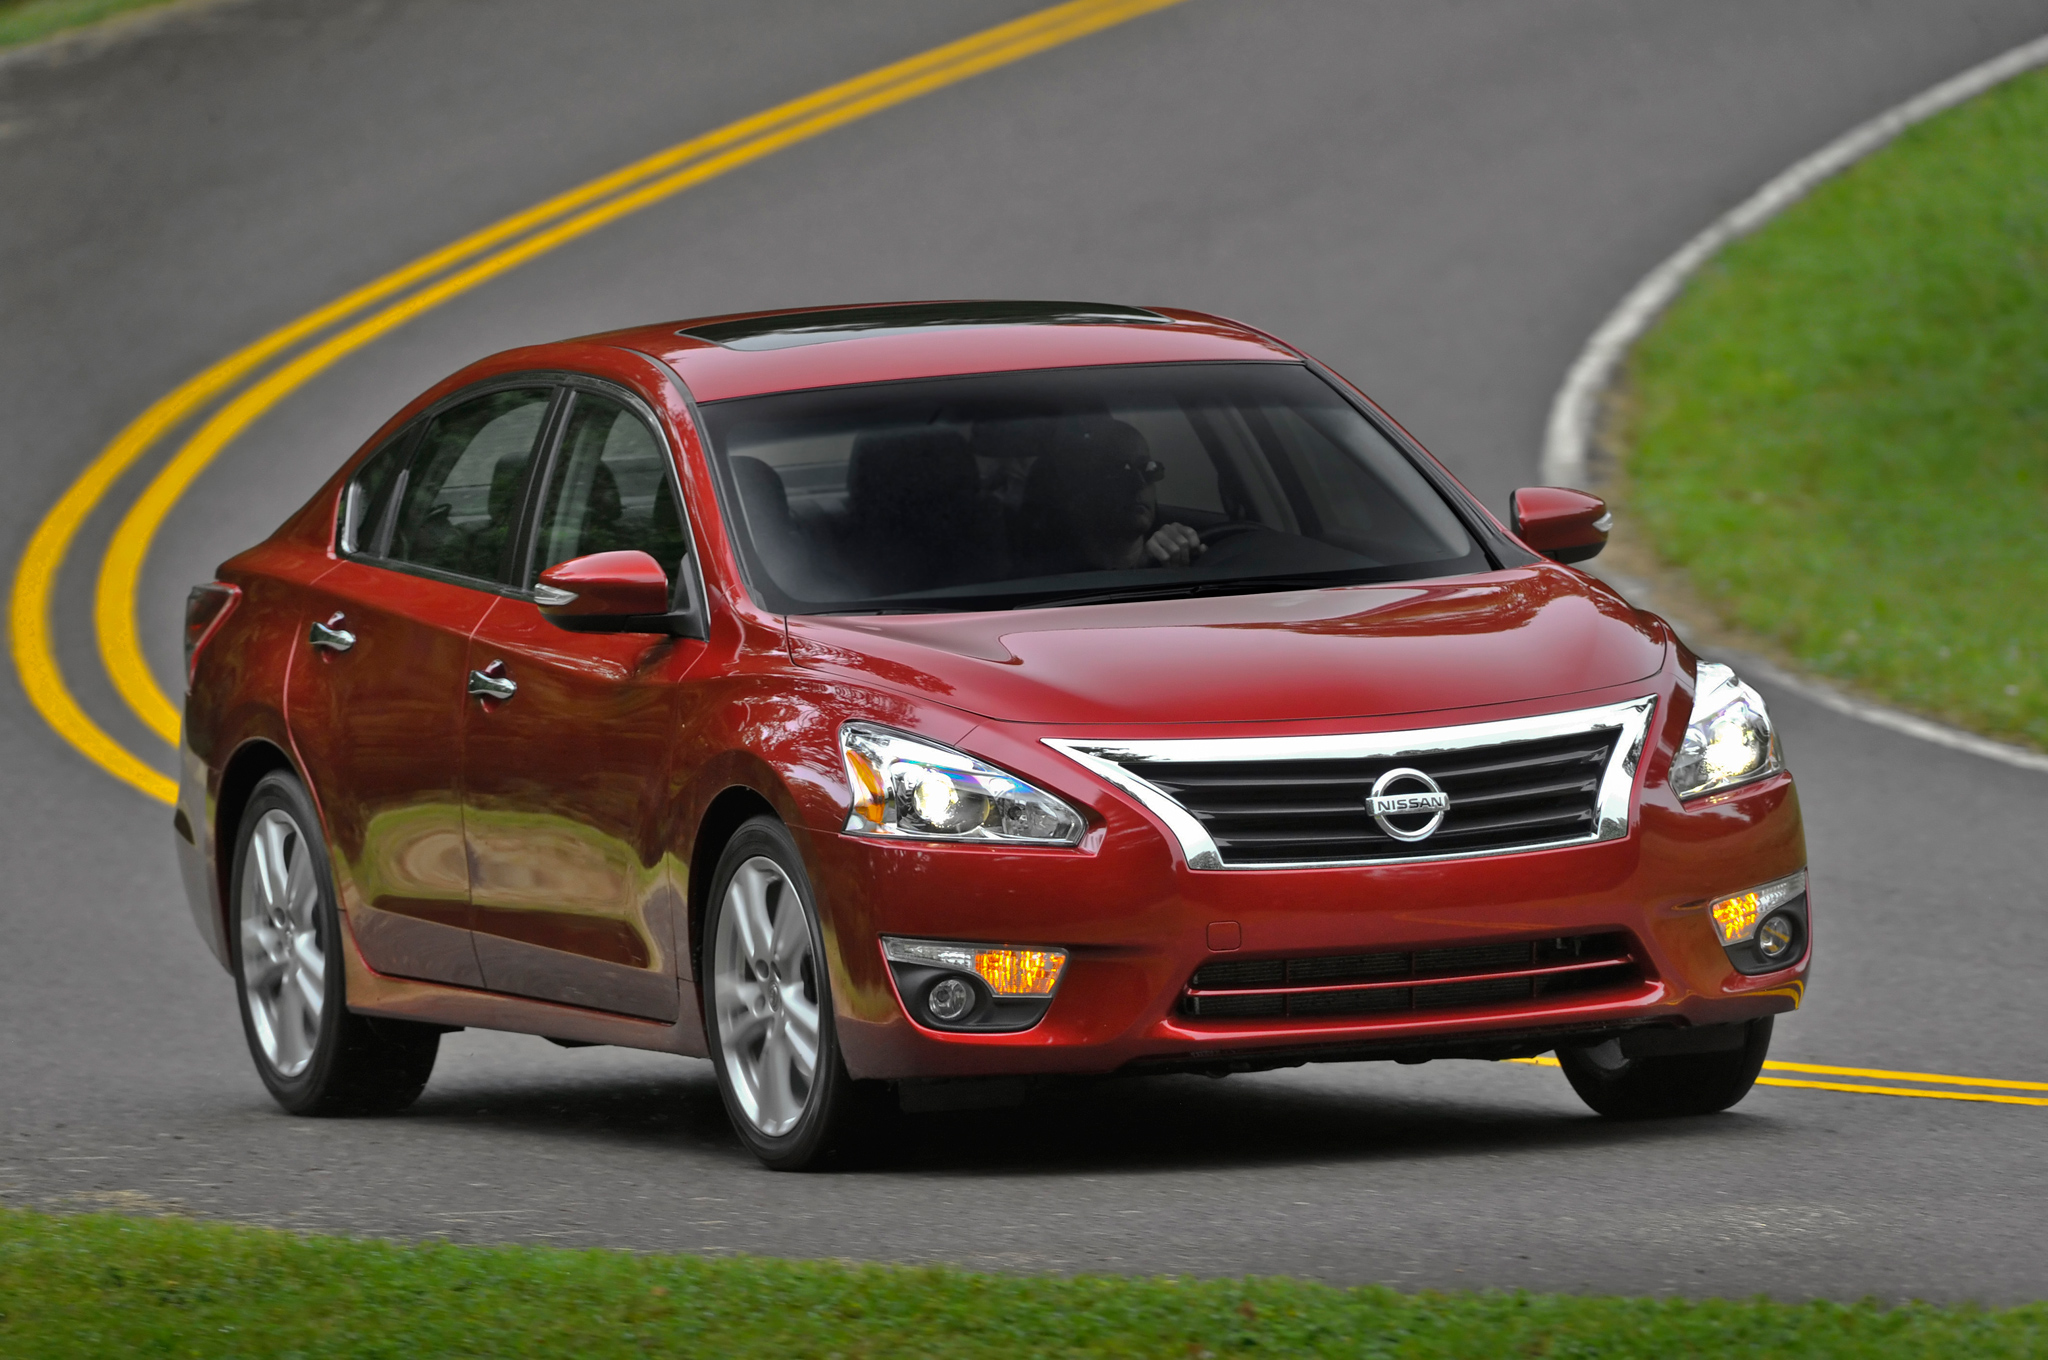 2014 of Nissan Altima (Red)